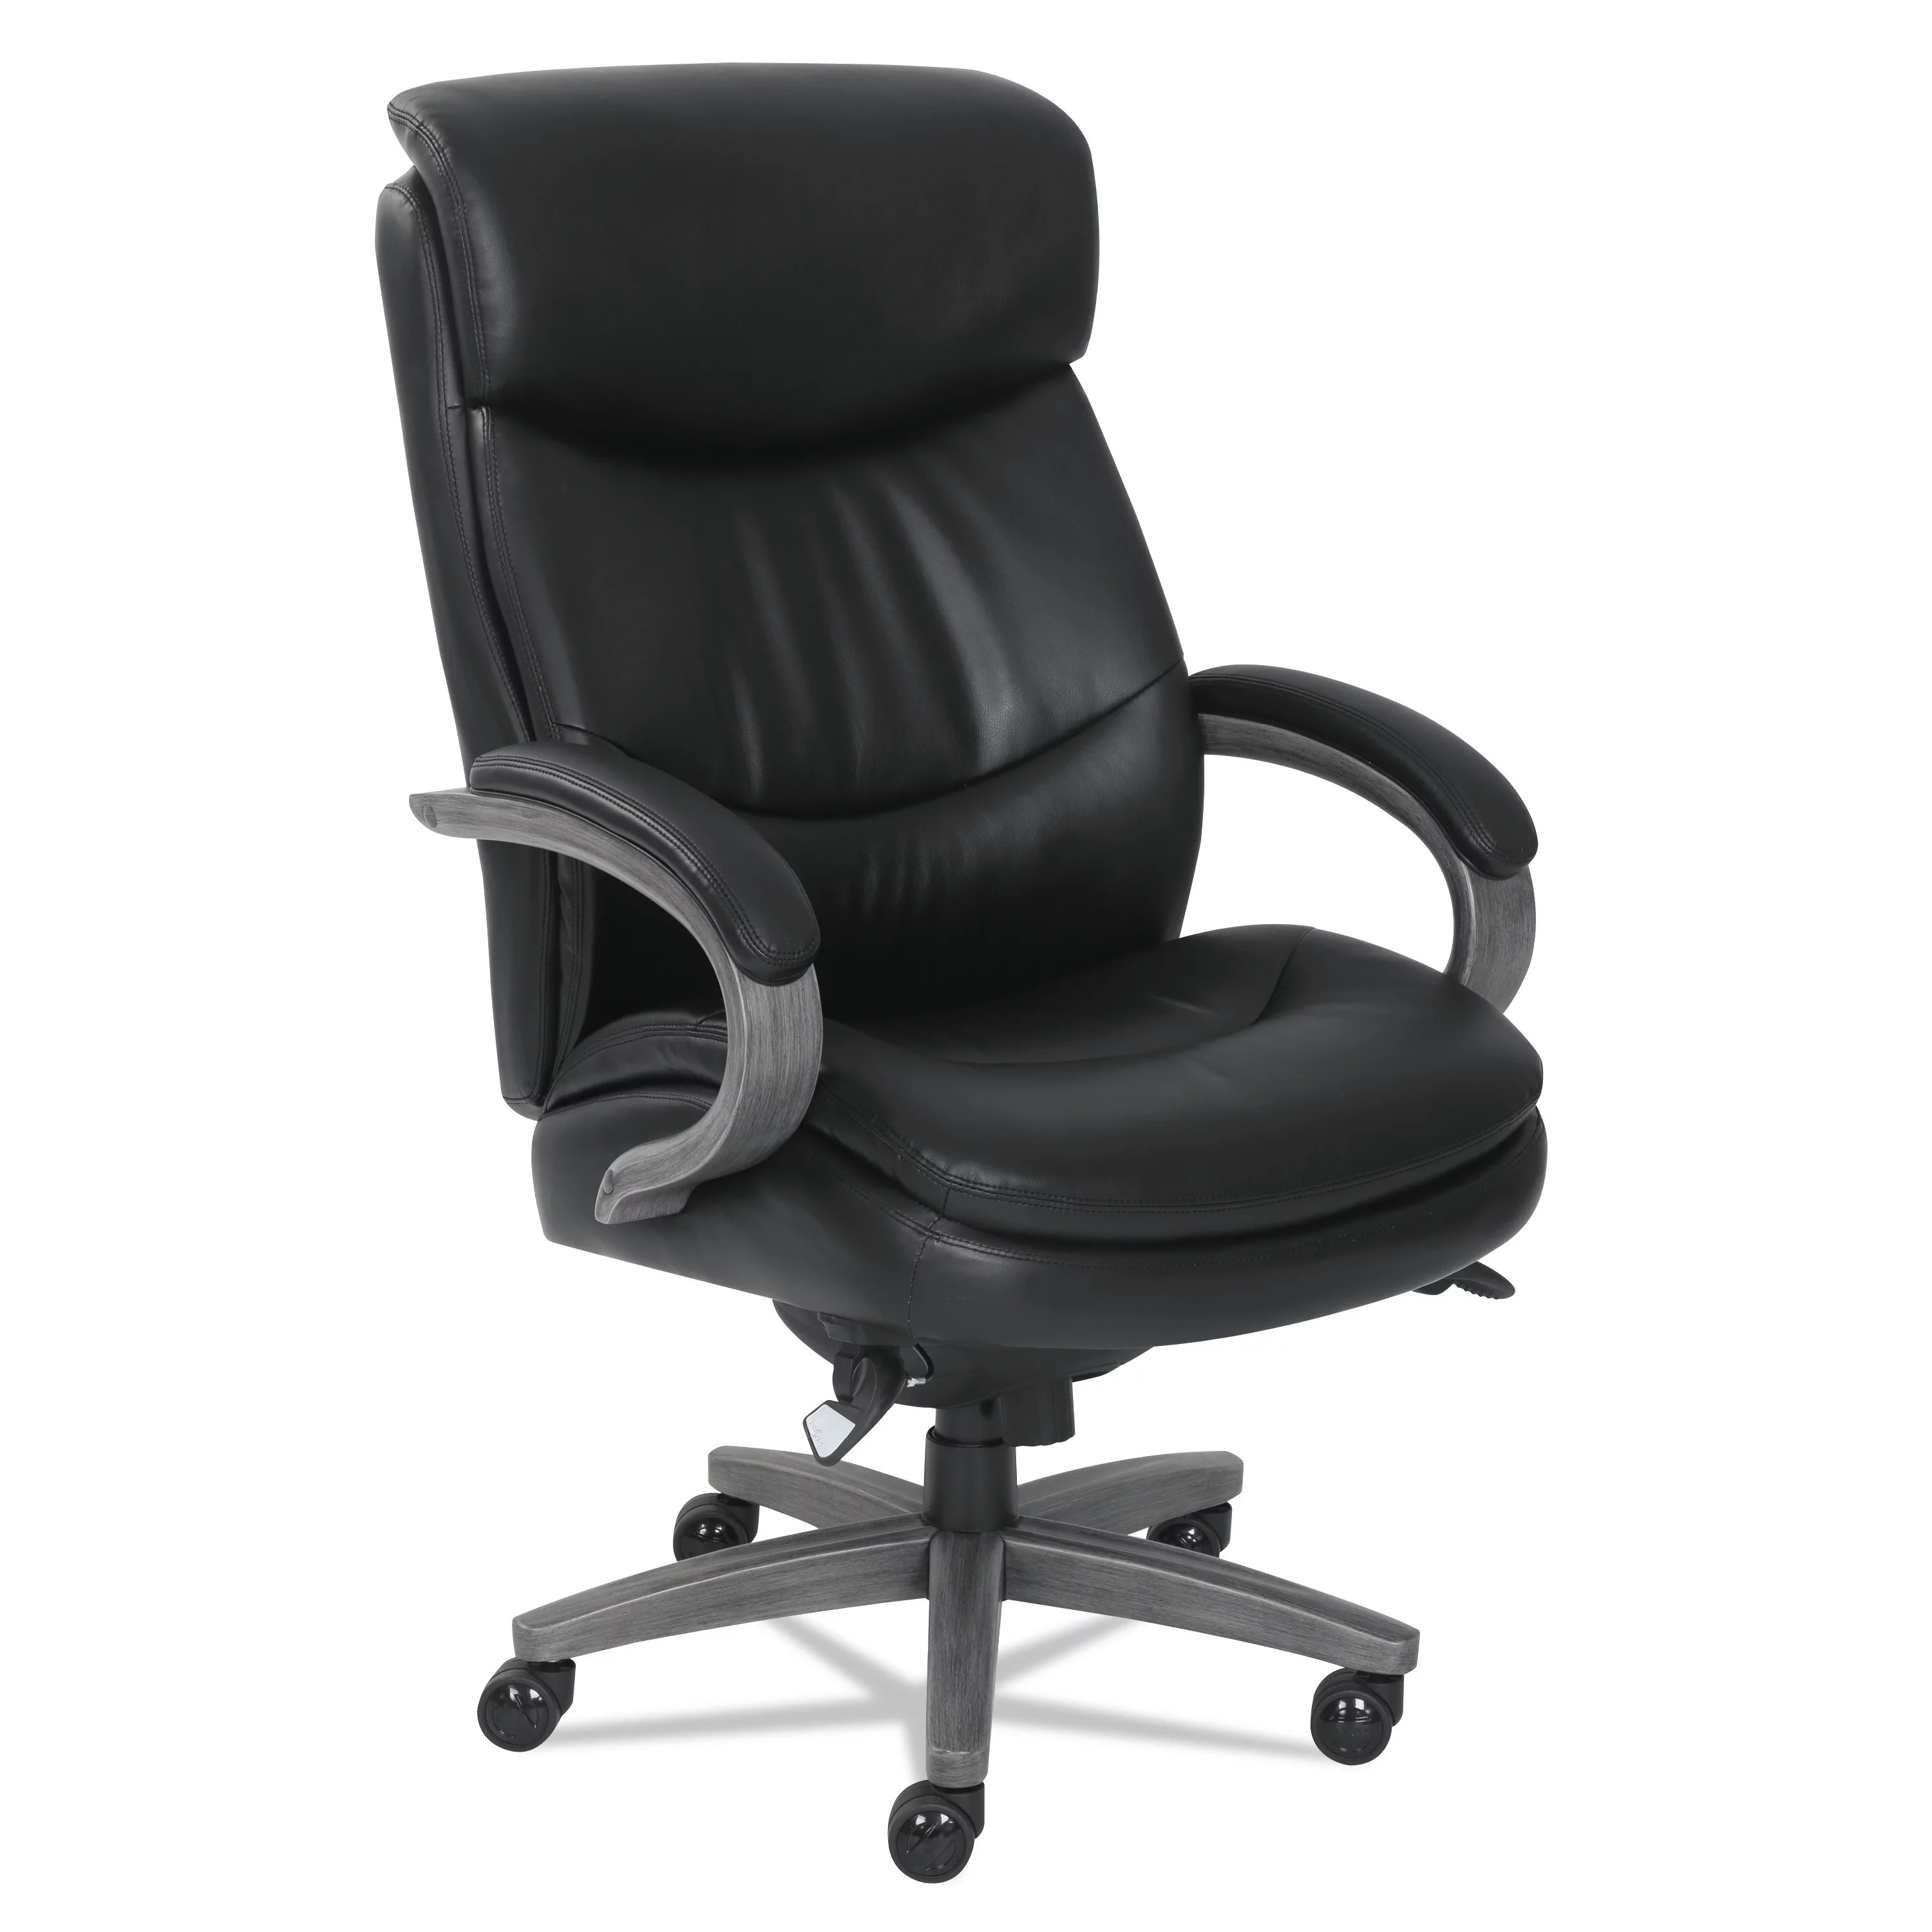 la z boy martin big and tall executive office chair reviews chairs folding outdoor woodbury black